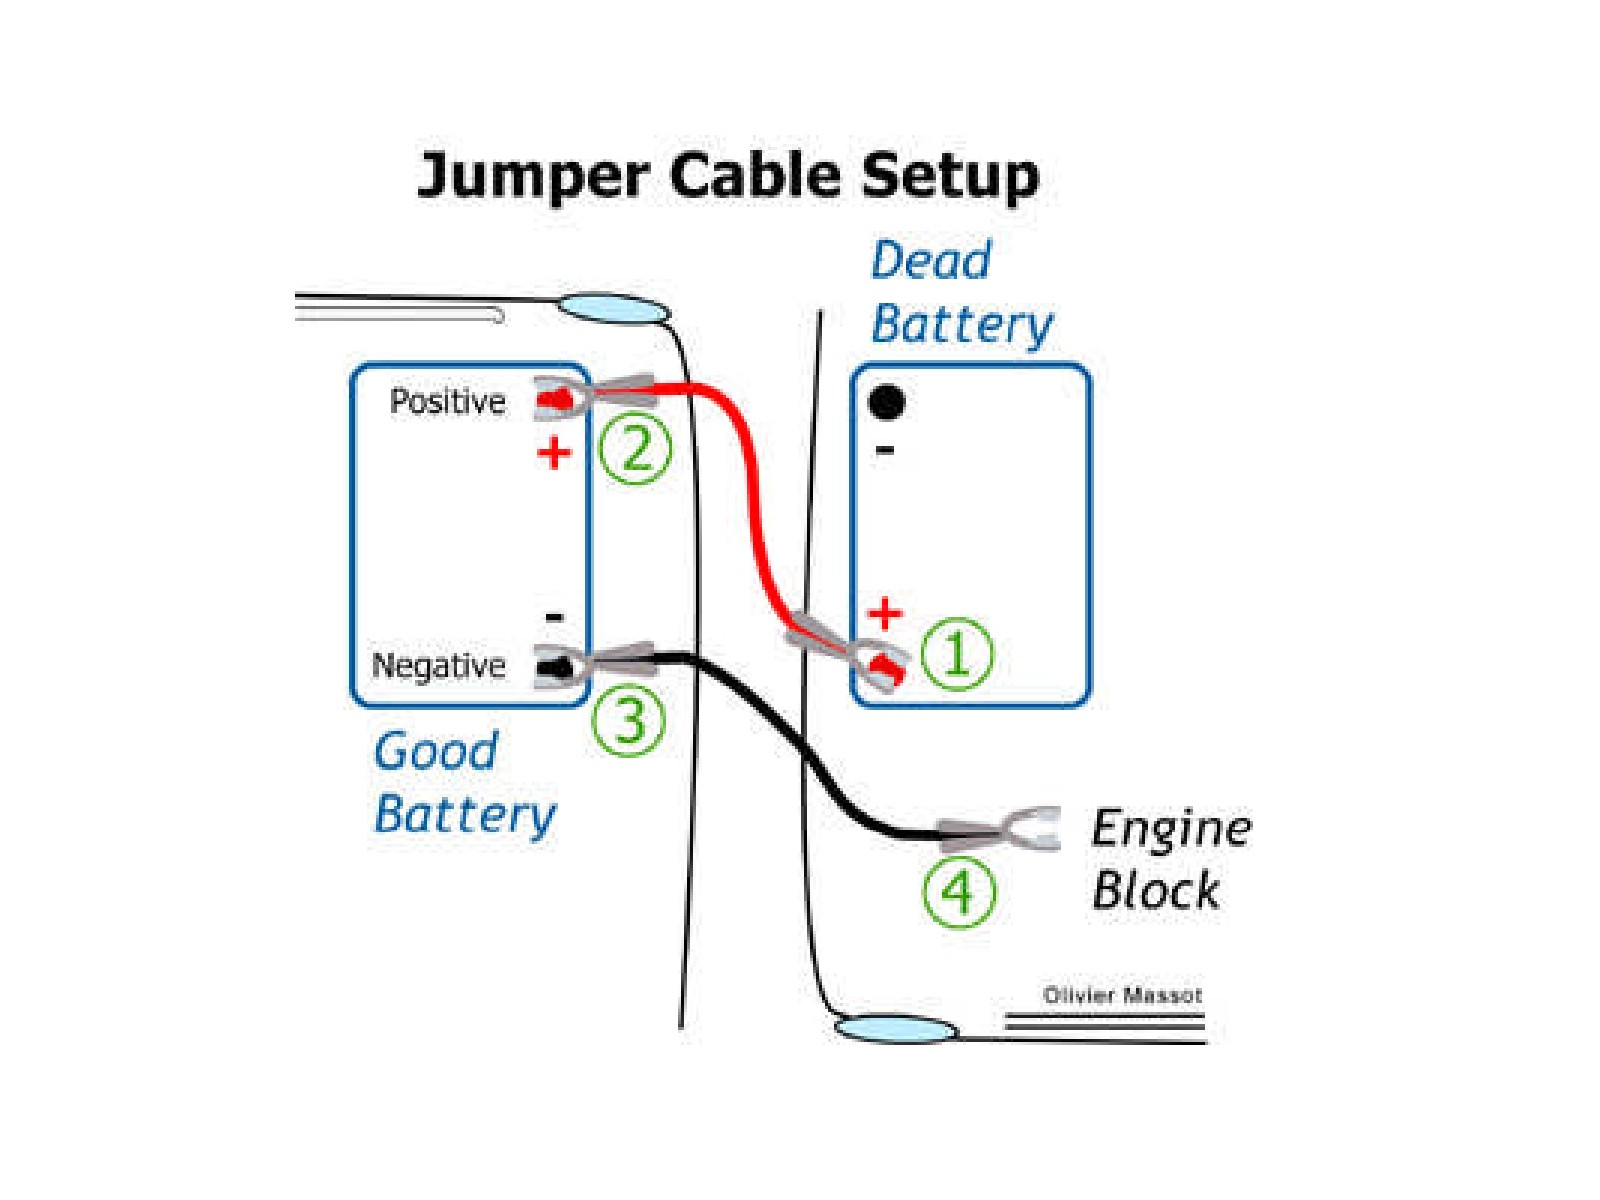 Jumper Cable Diagram Jumper Cables Diagram Jumping Your Car Battery Of Jumper Cable Diagram